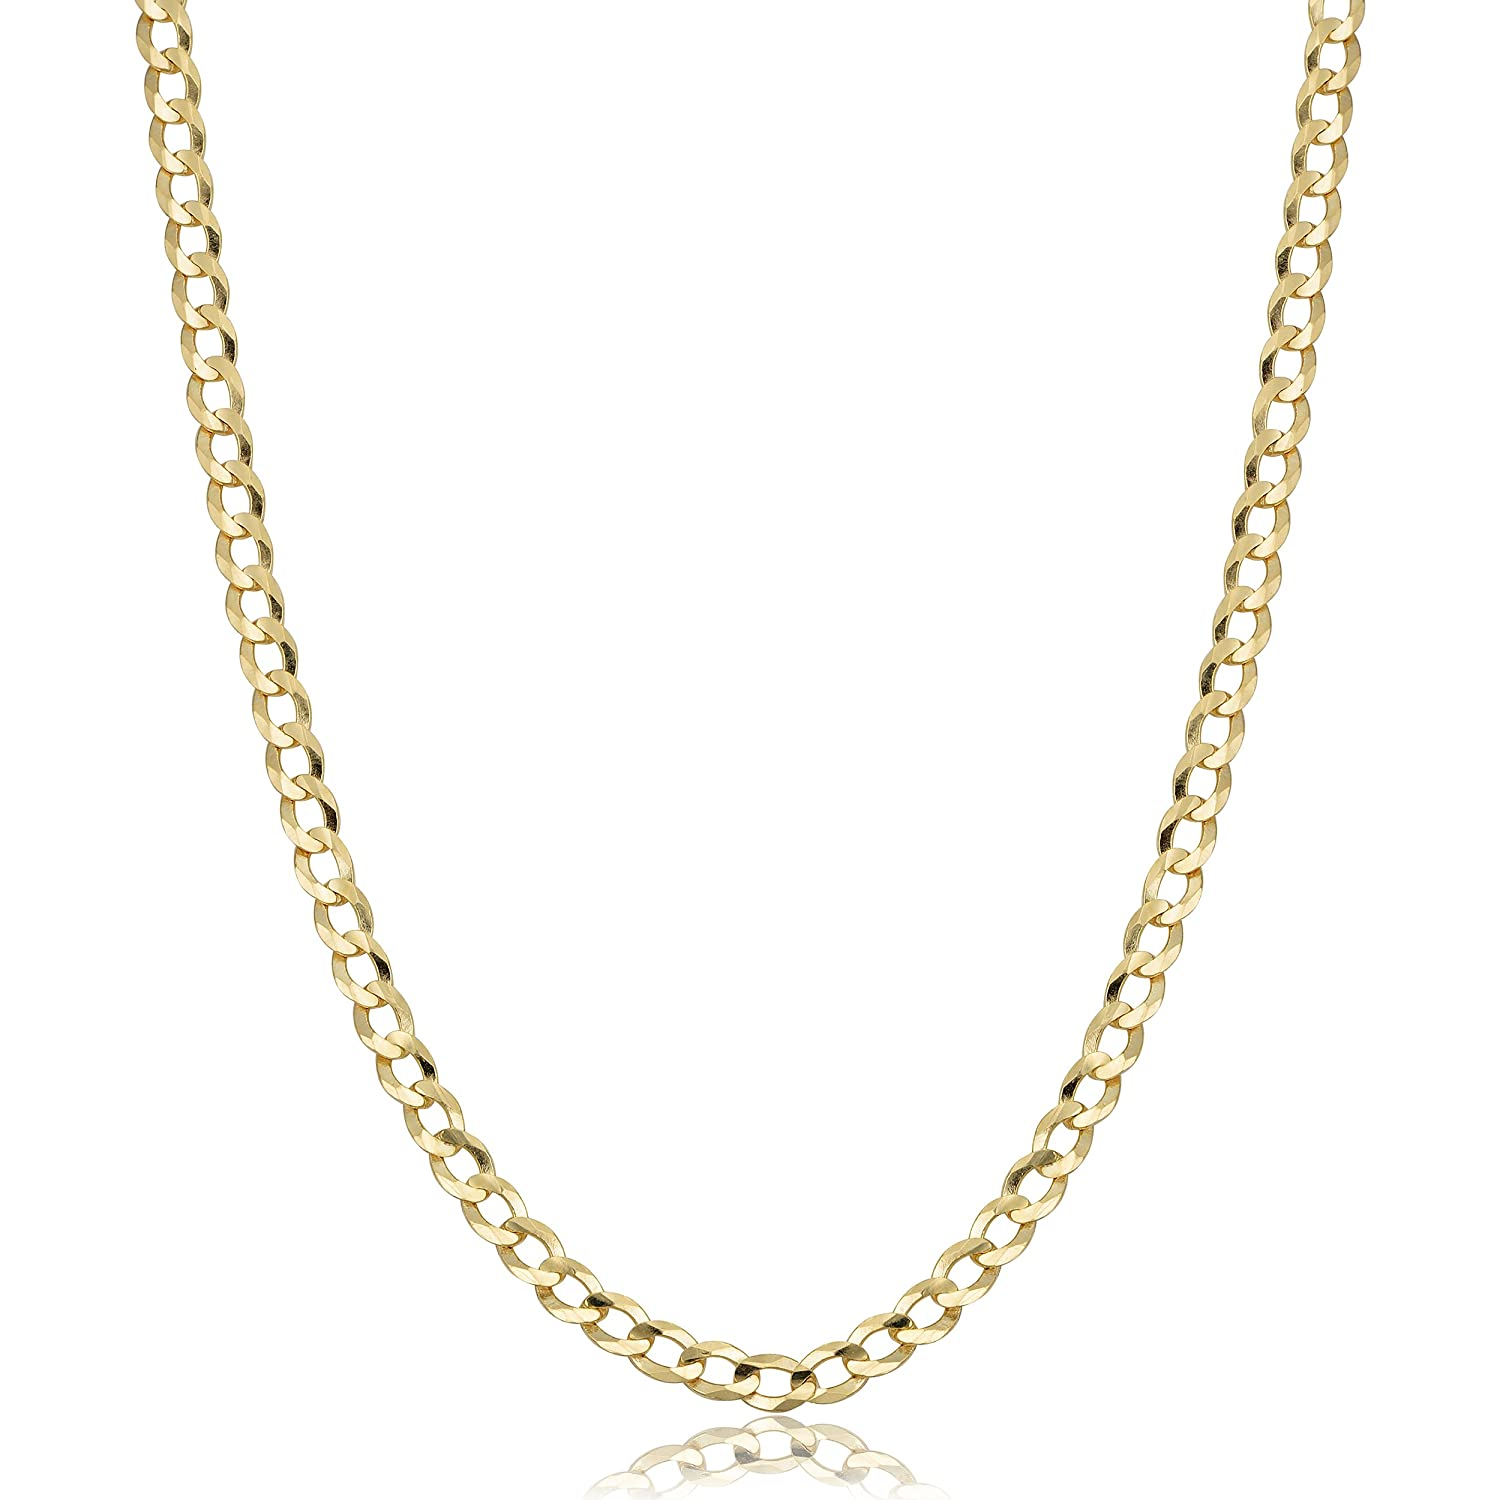 1c09ba5a9a96cd Amazon.com: Mens or Womens 10k Yellow Gold Curb Link Chain Necklace (3.6mm,  18 inch): Jewelry